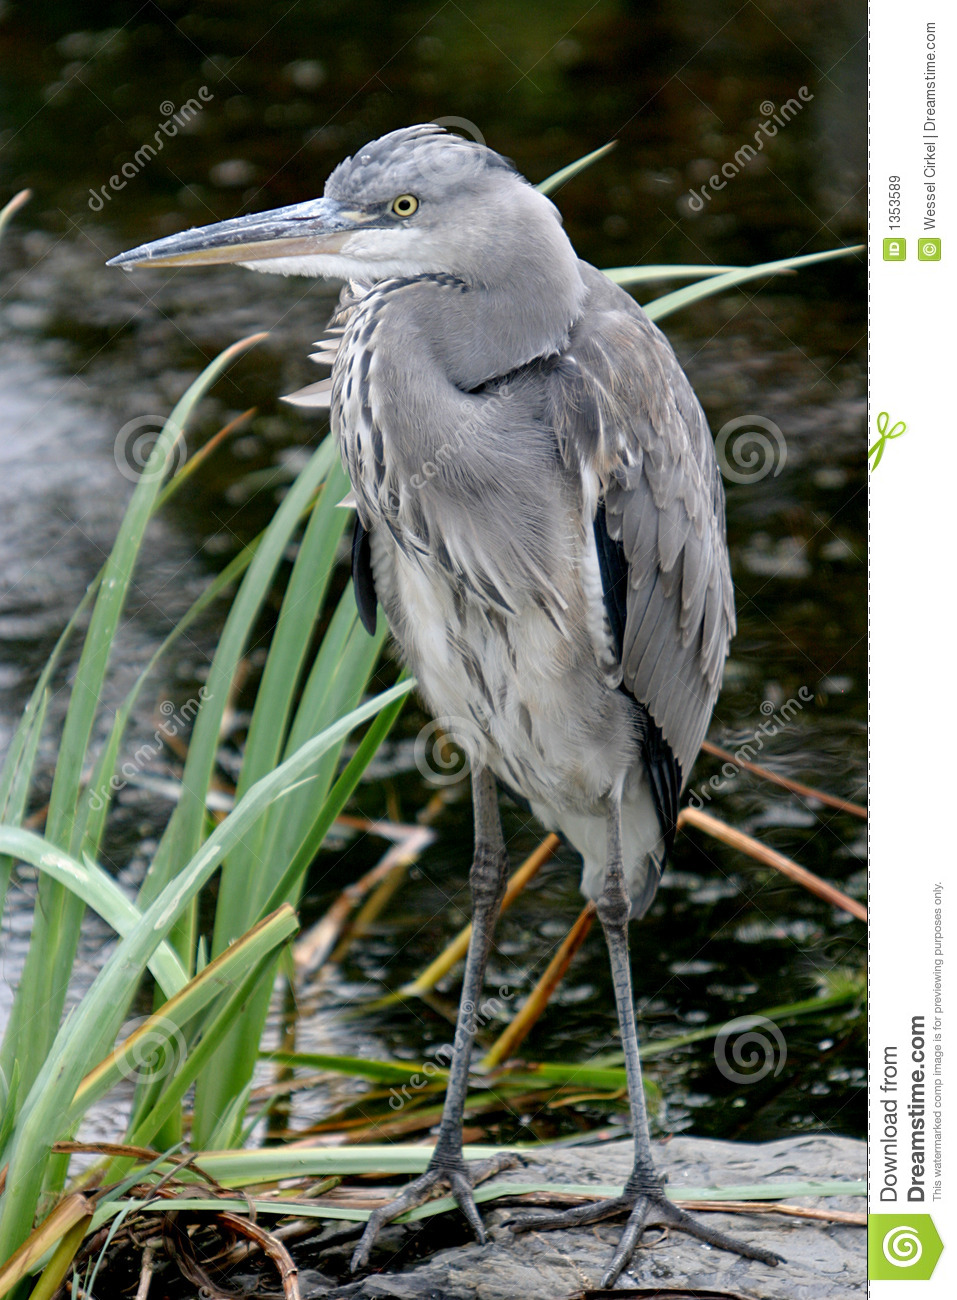 A spying grey heron near water